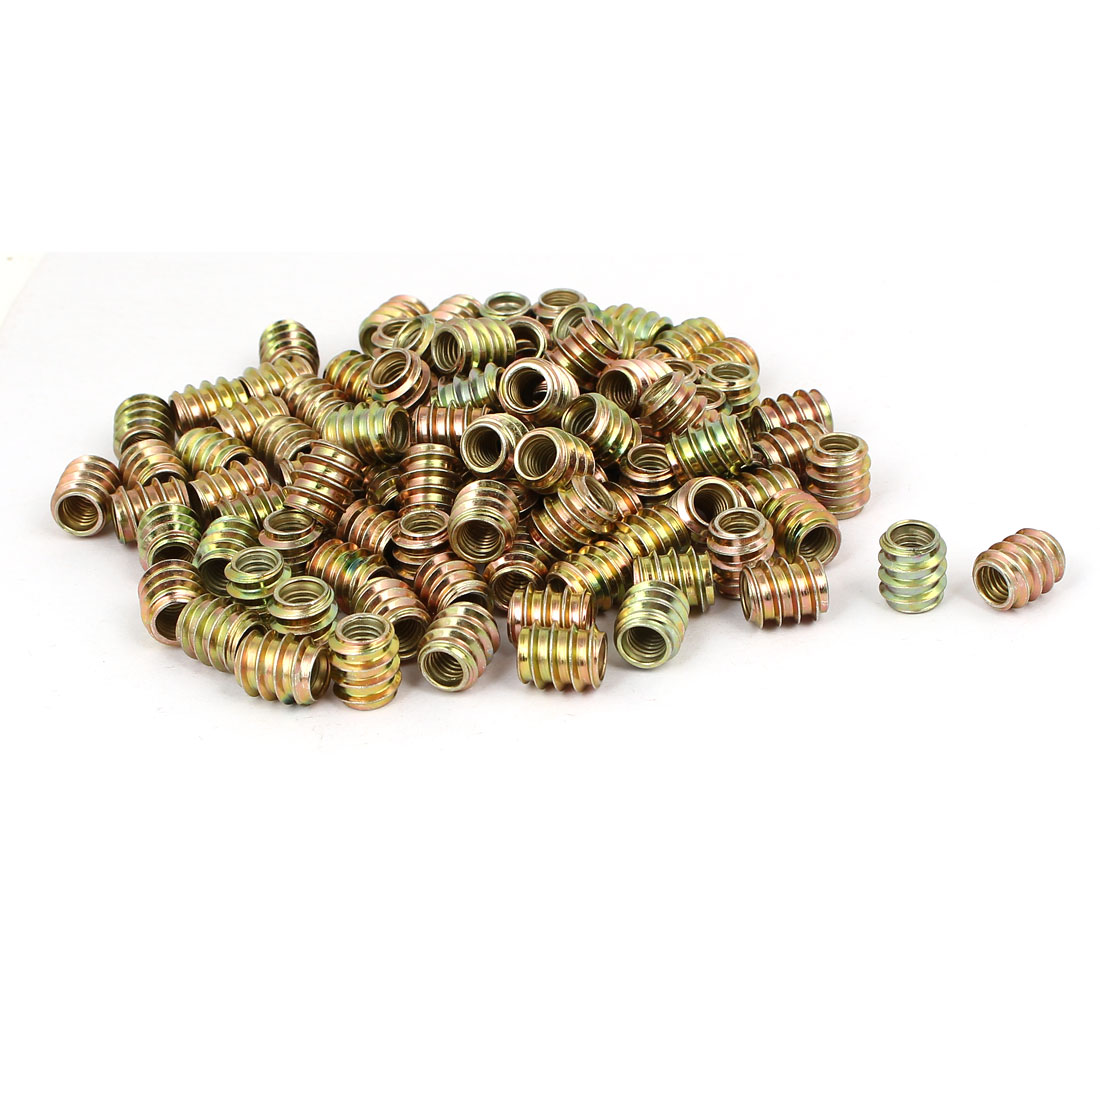 Wood Furniture Insert Fixing Screw E-Nut Bronze Tone M6 x 12mm 100pcs